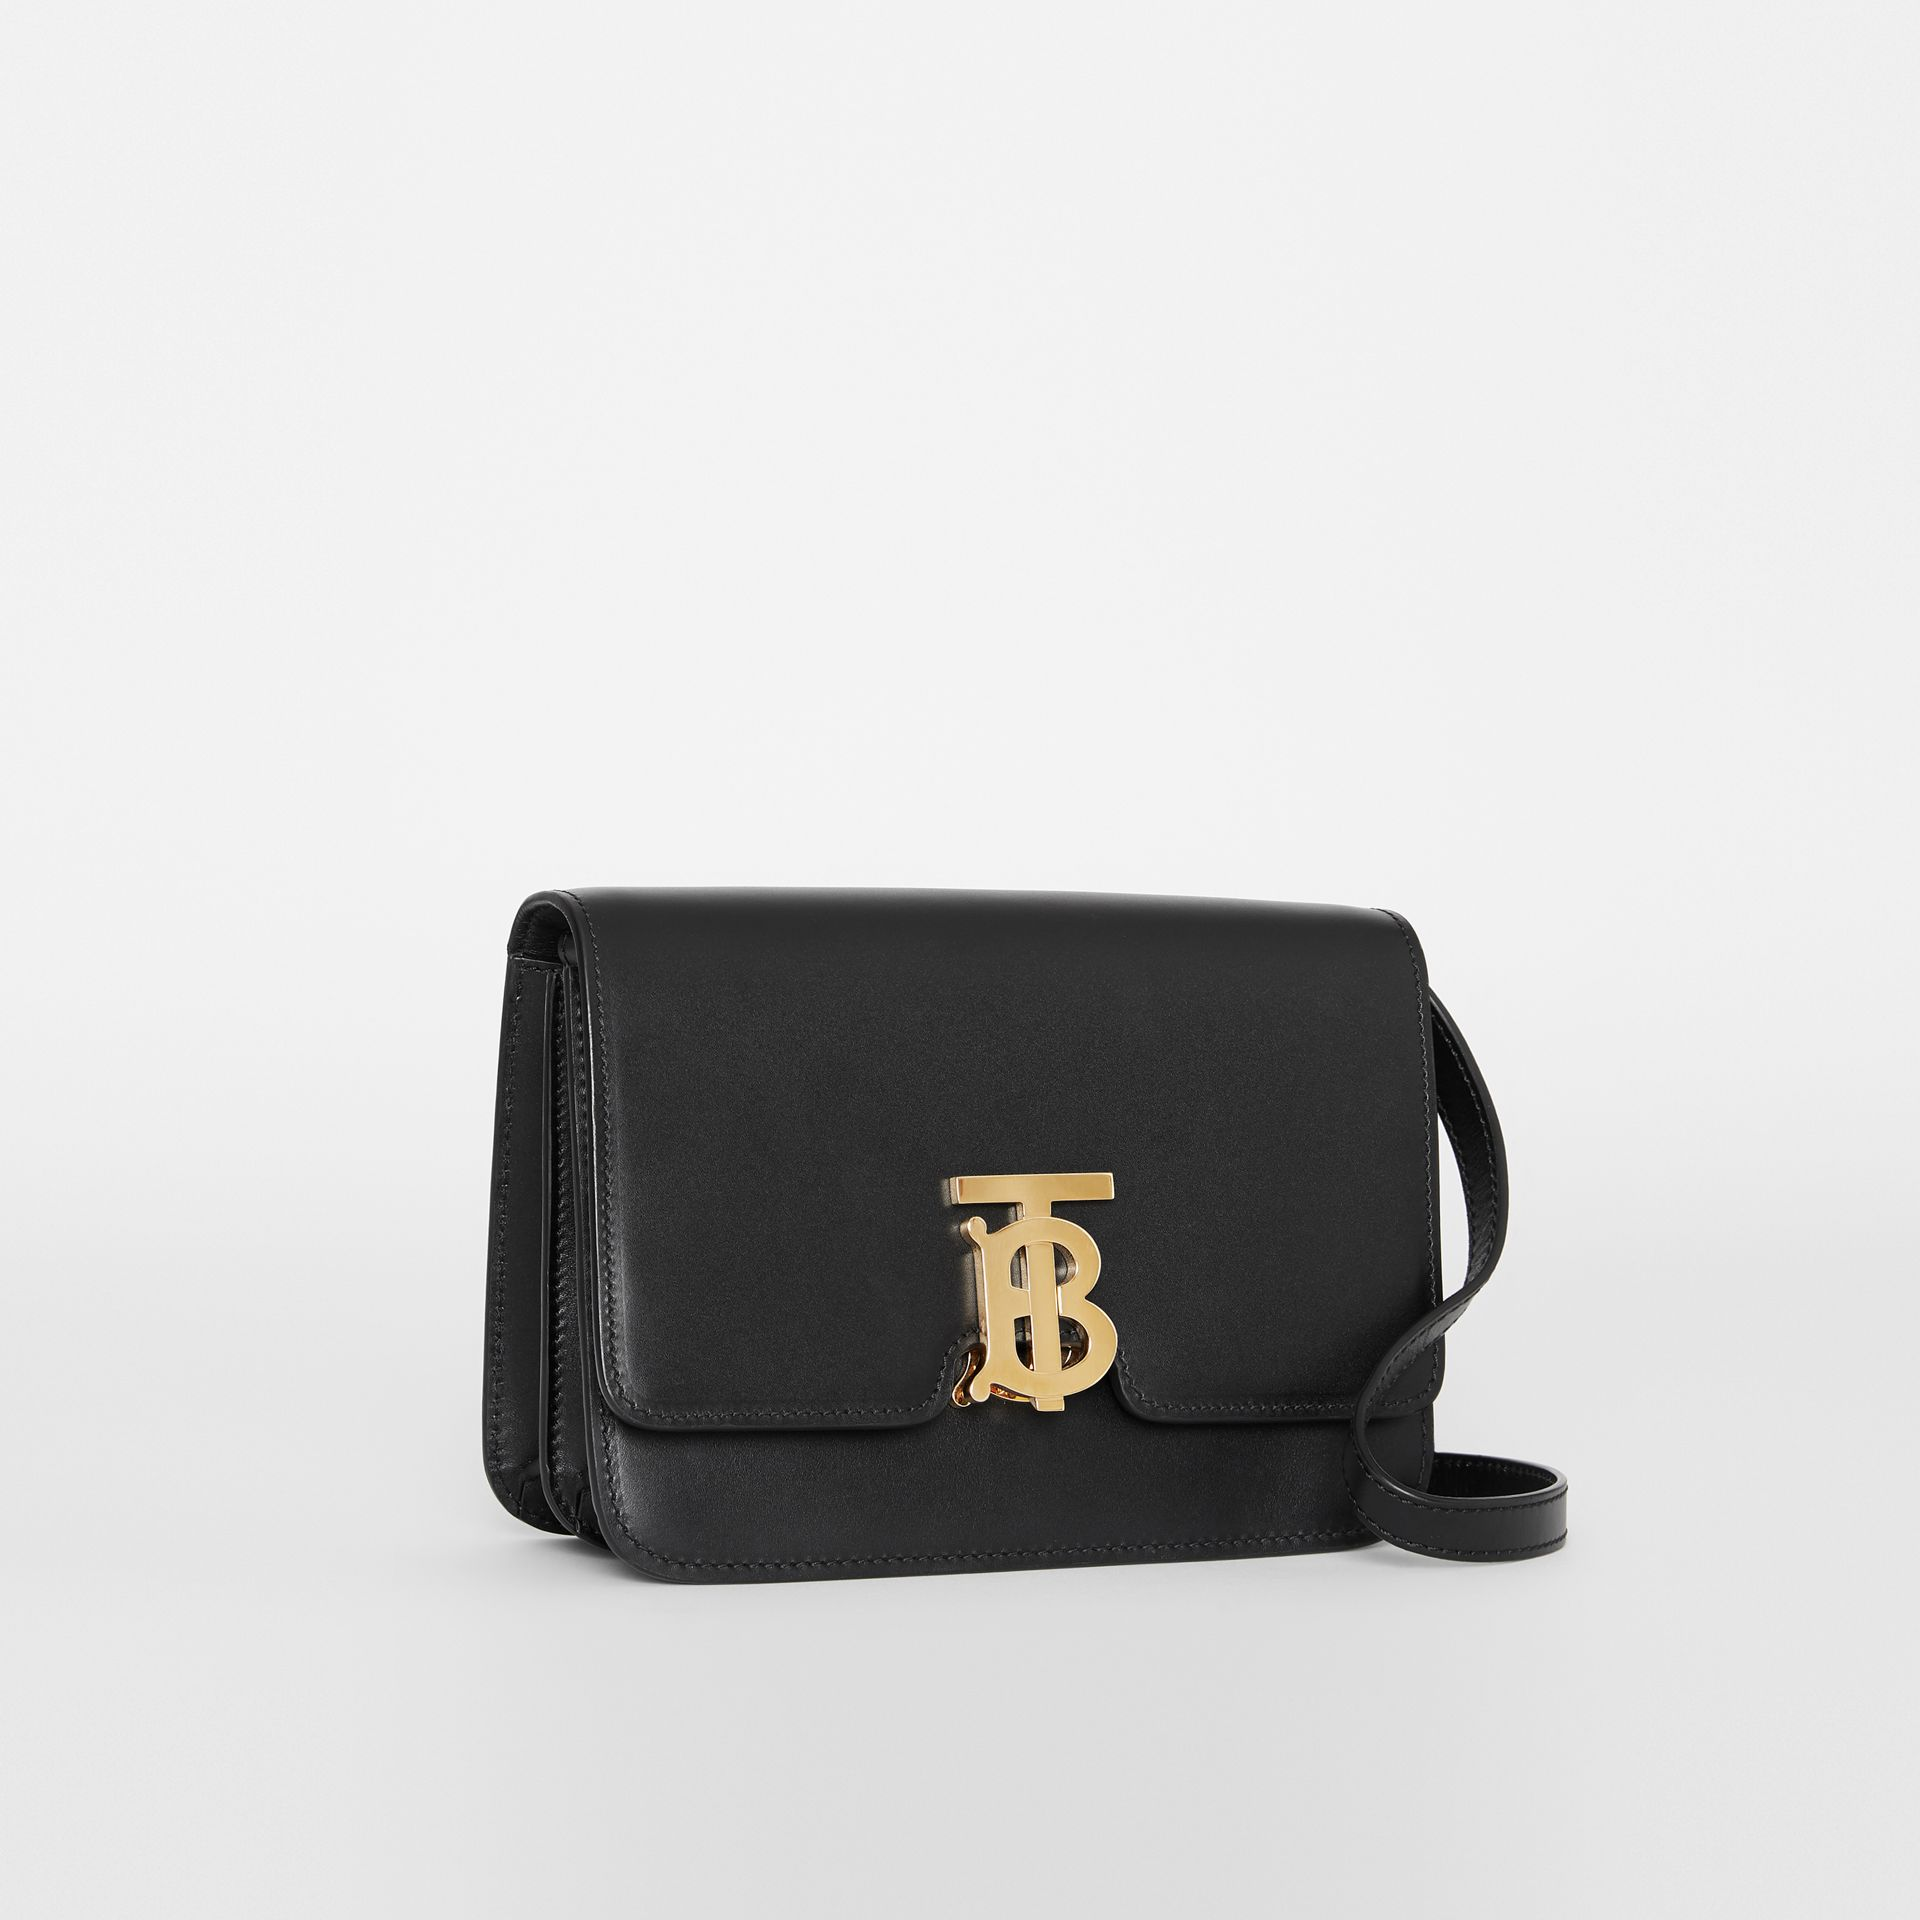 Small Leather TB Bag in Black - Women | Burberry - gallery image 8